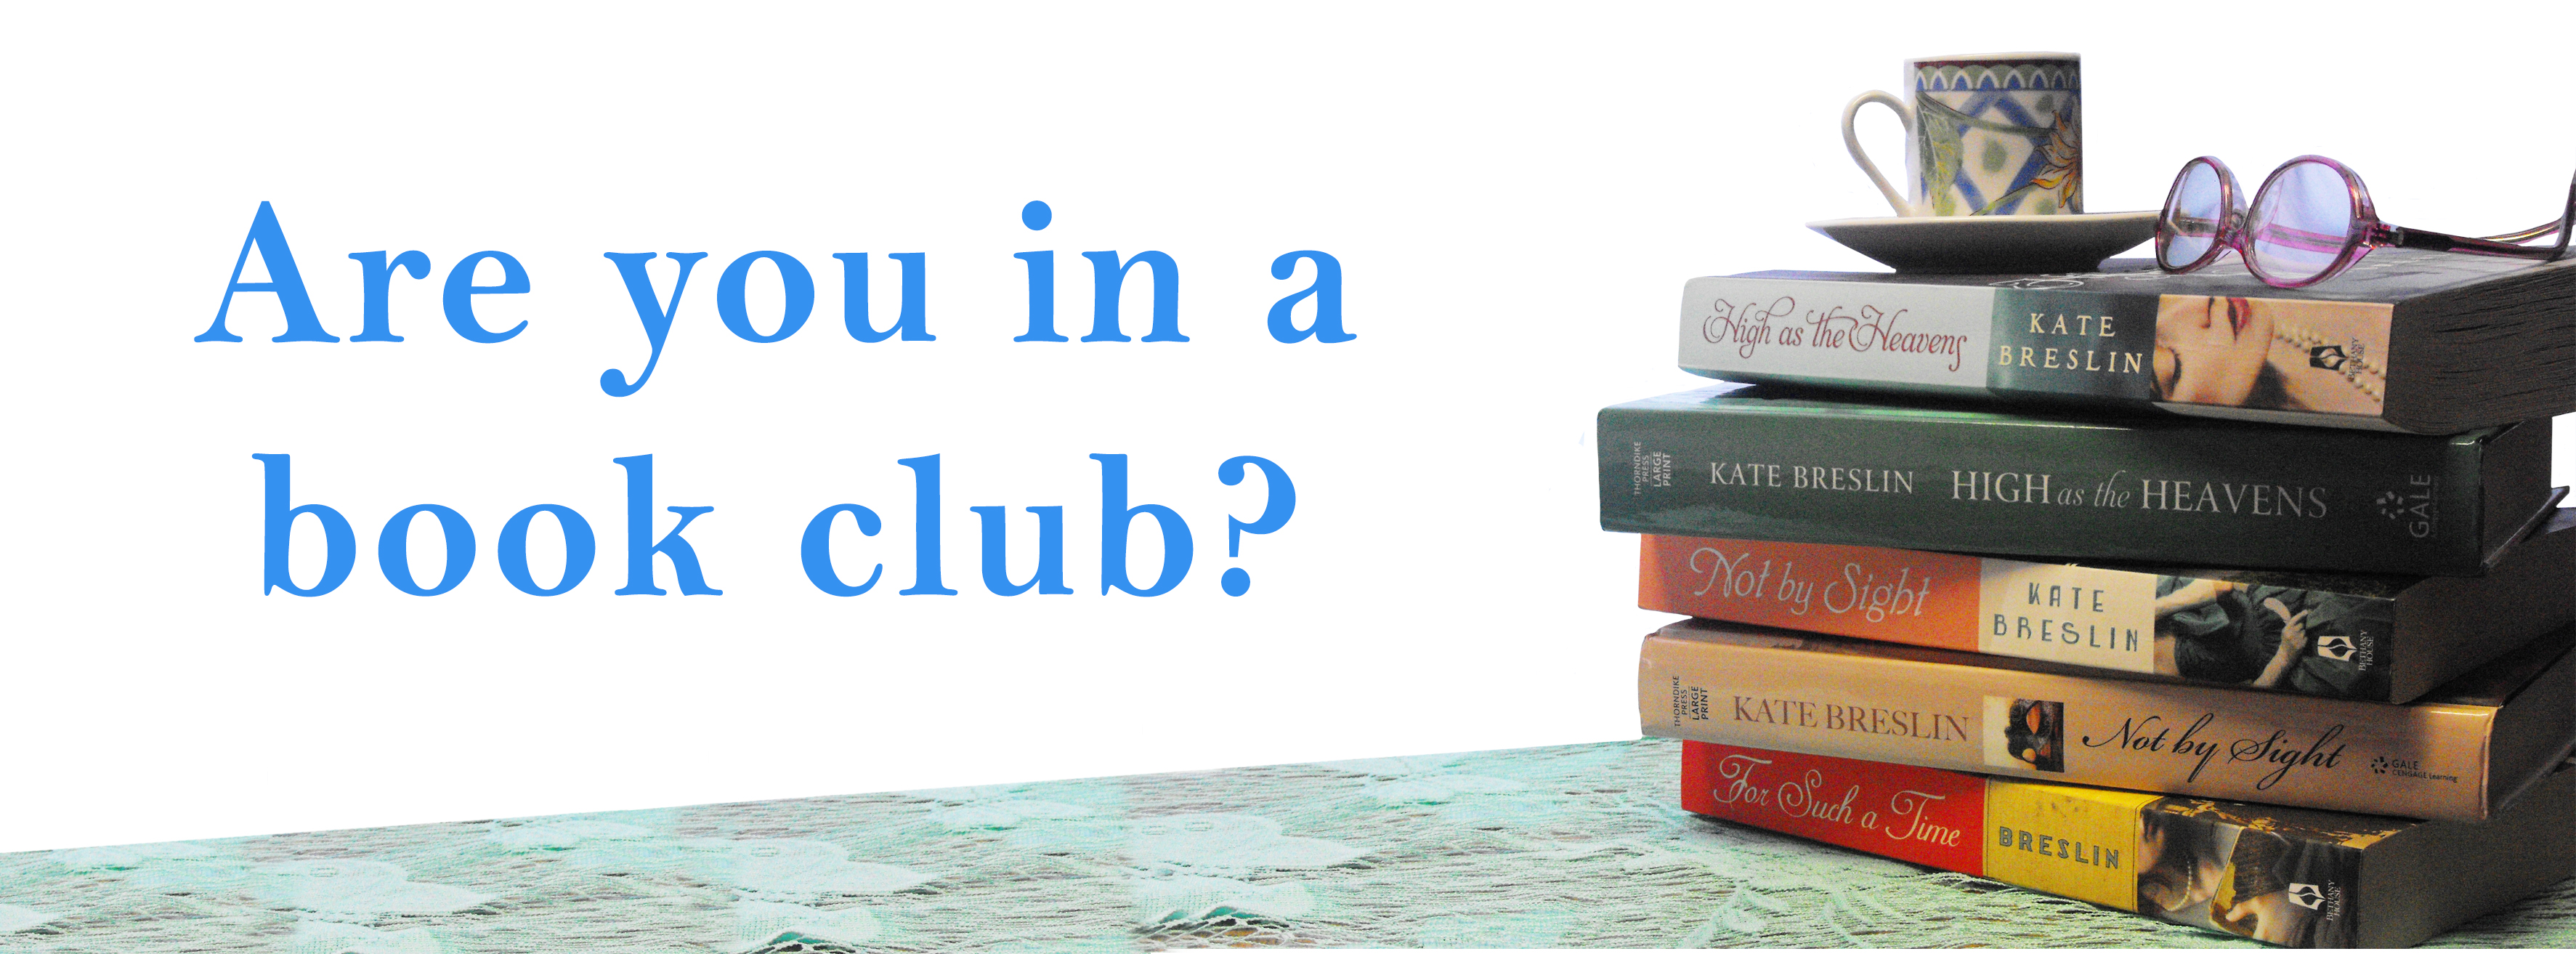 Join Kate Breslin's Book Club